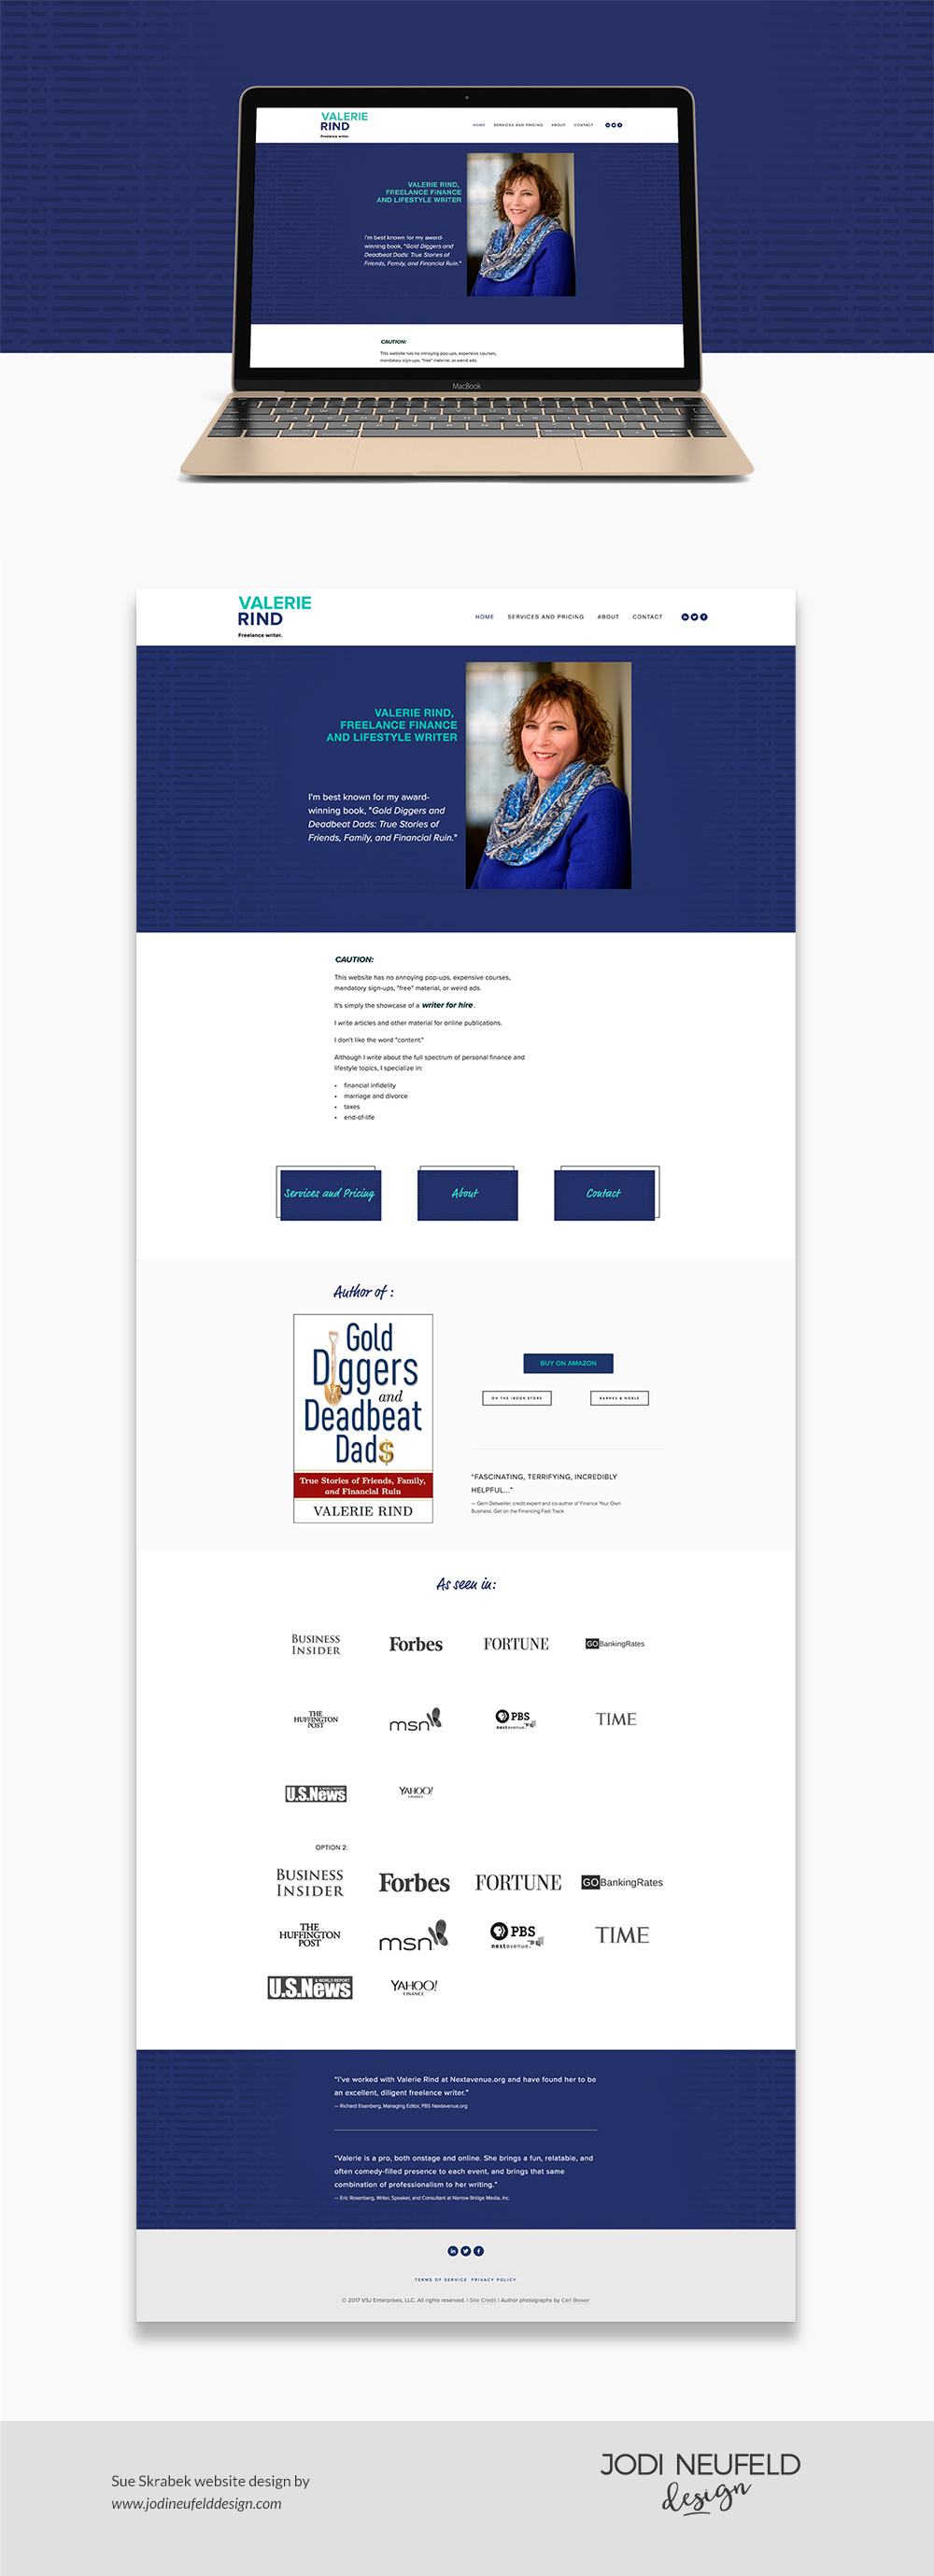 Valerie Rind Home page design | Squarespace web design for a freelance writer and author by Jodi Neufeld Design